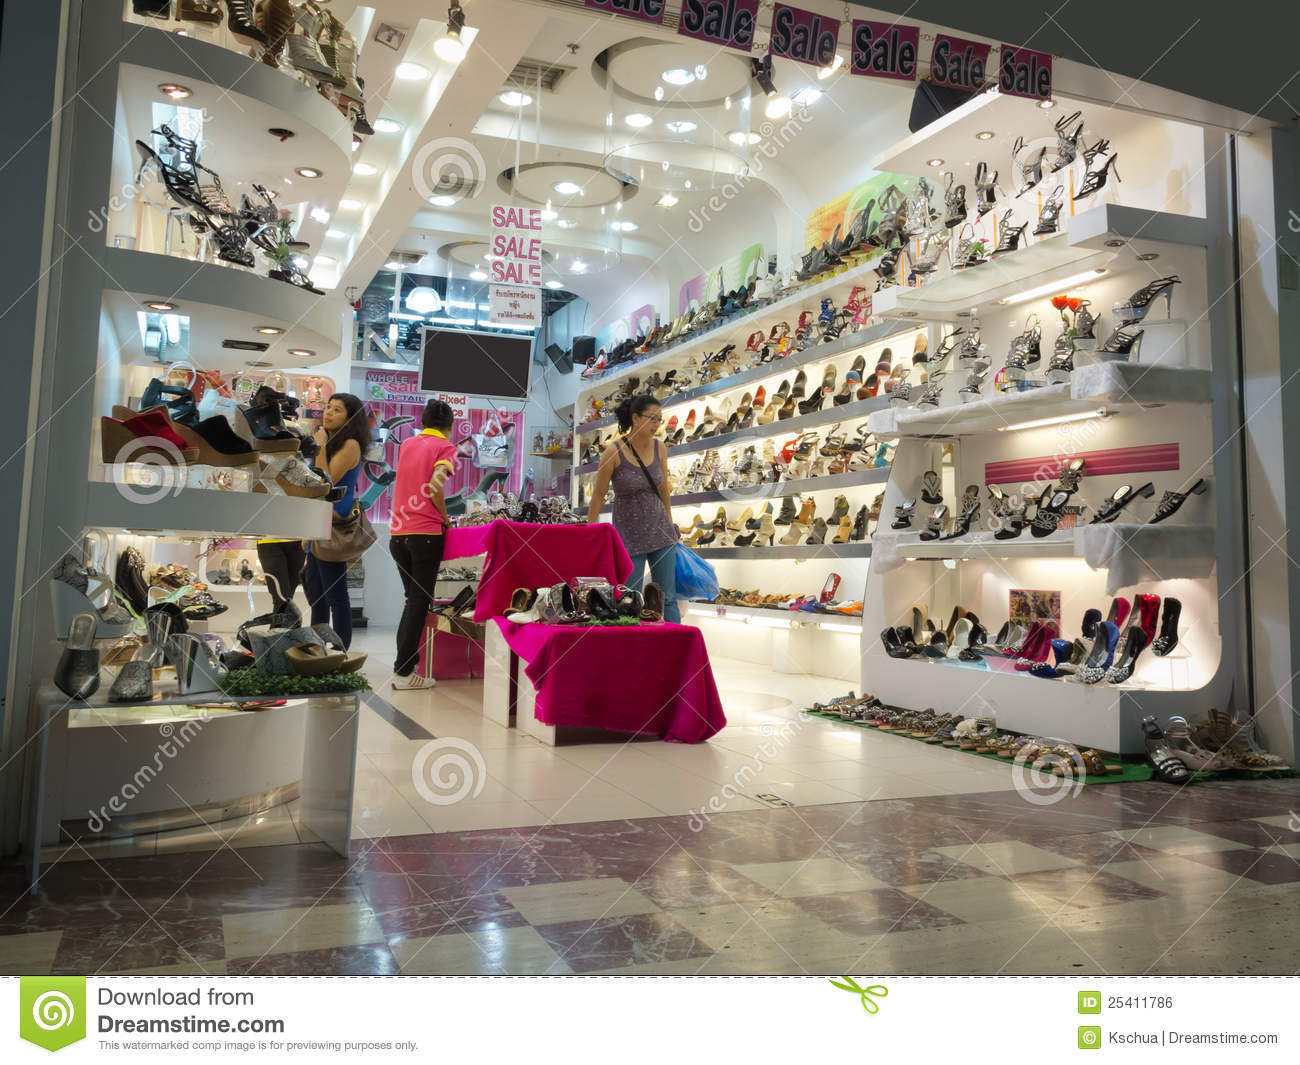 Women's Shoes. Shoes for women have been crafted by a wide variety of brands, ranging from Adidas and Nike to Clarks and Tory Burch. There is also a wide variety styles to select from, including boots, heels, and athletic shoes to name a few.